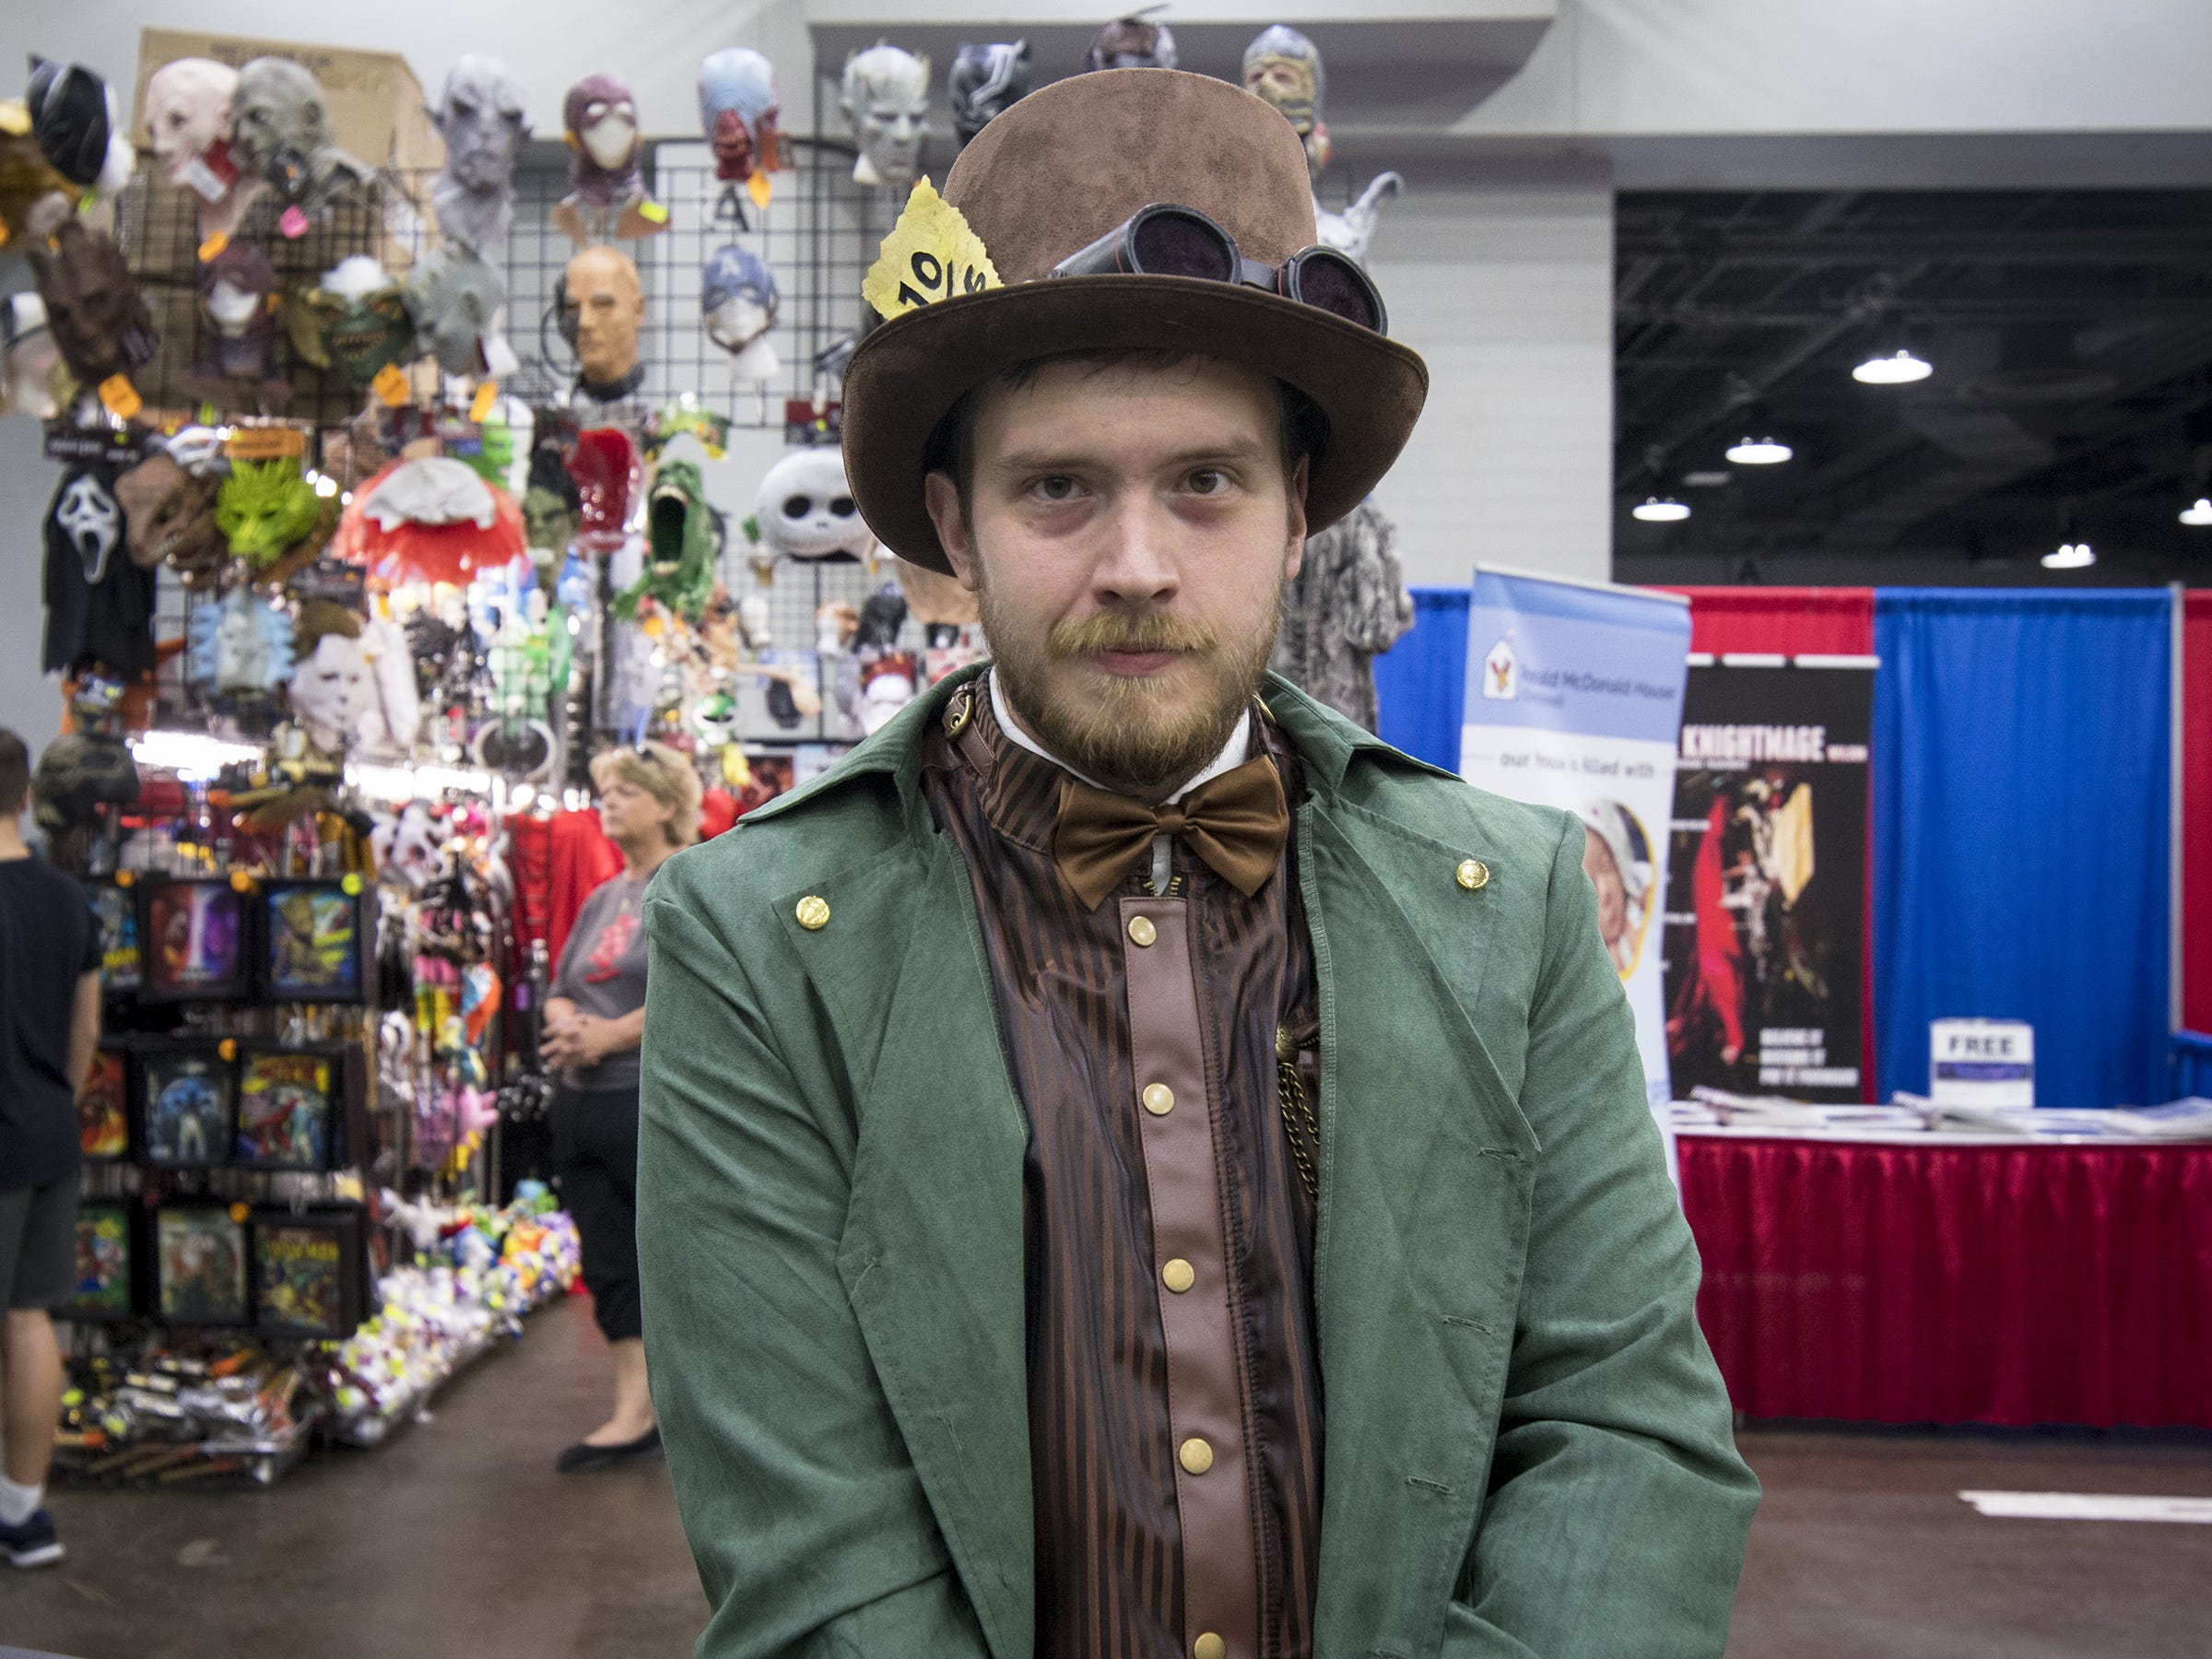 Trevor Conn of Amelia dresses as a steampunk Mad Hatter.